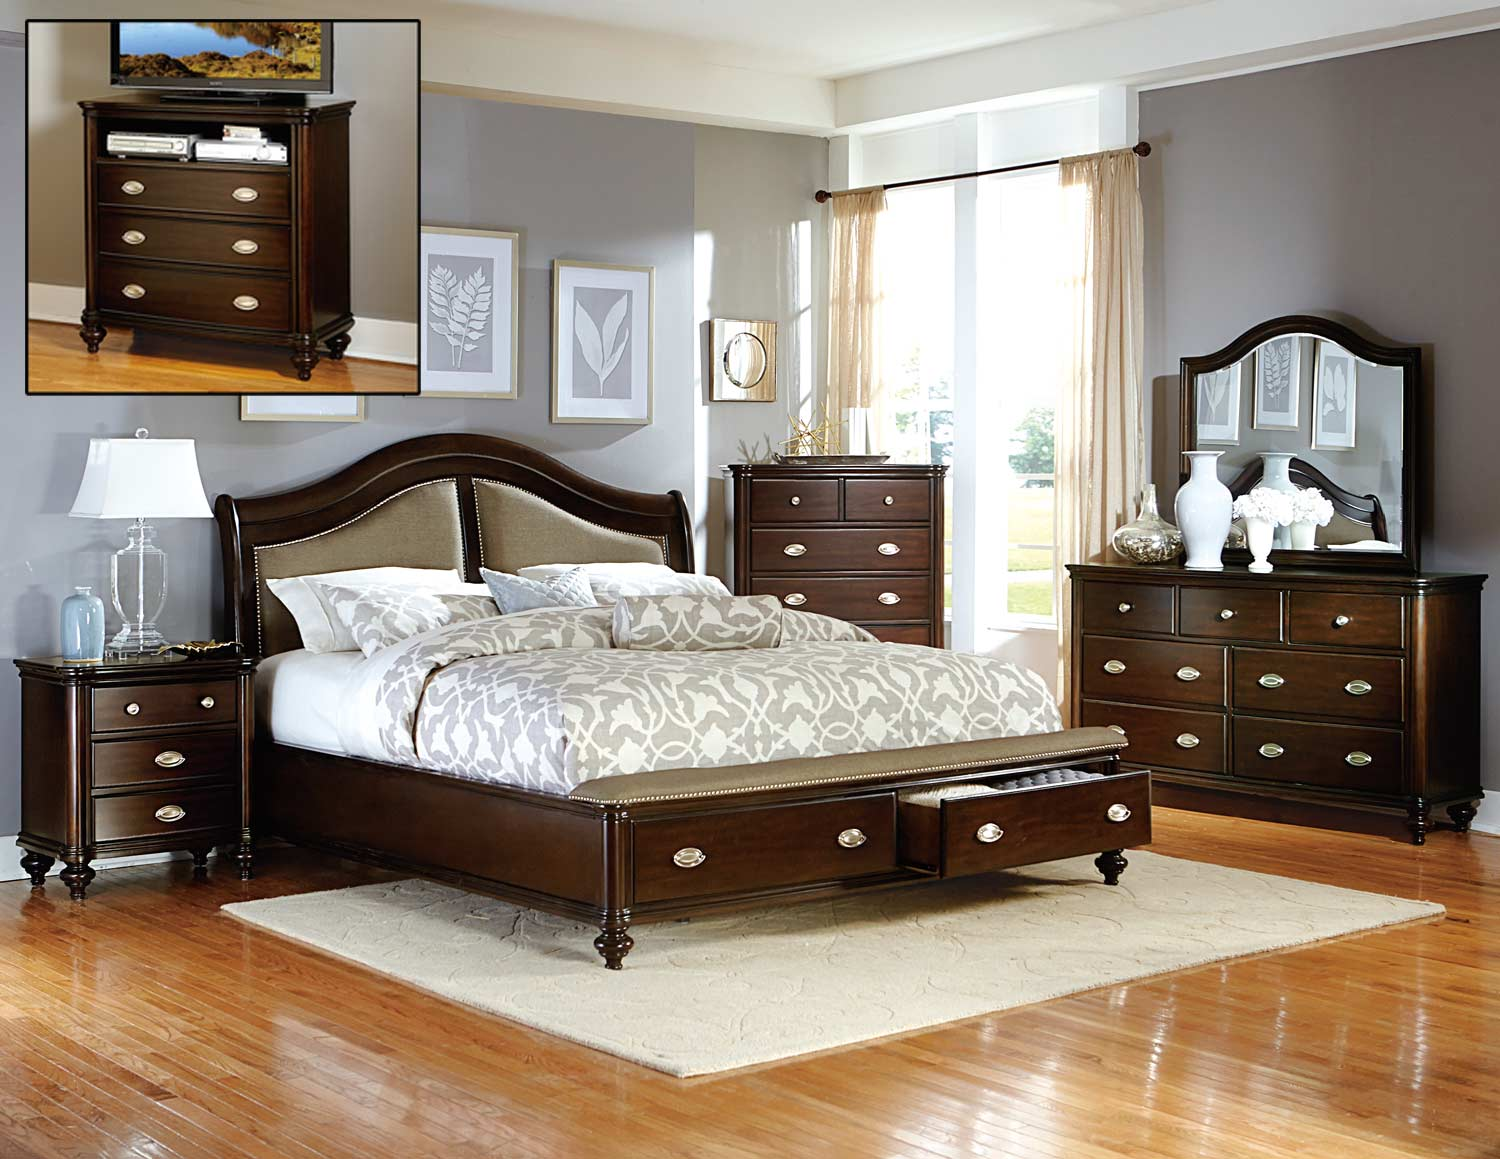 Homelegance Marston Bedroom Set - Dark Cherry